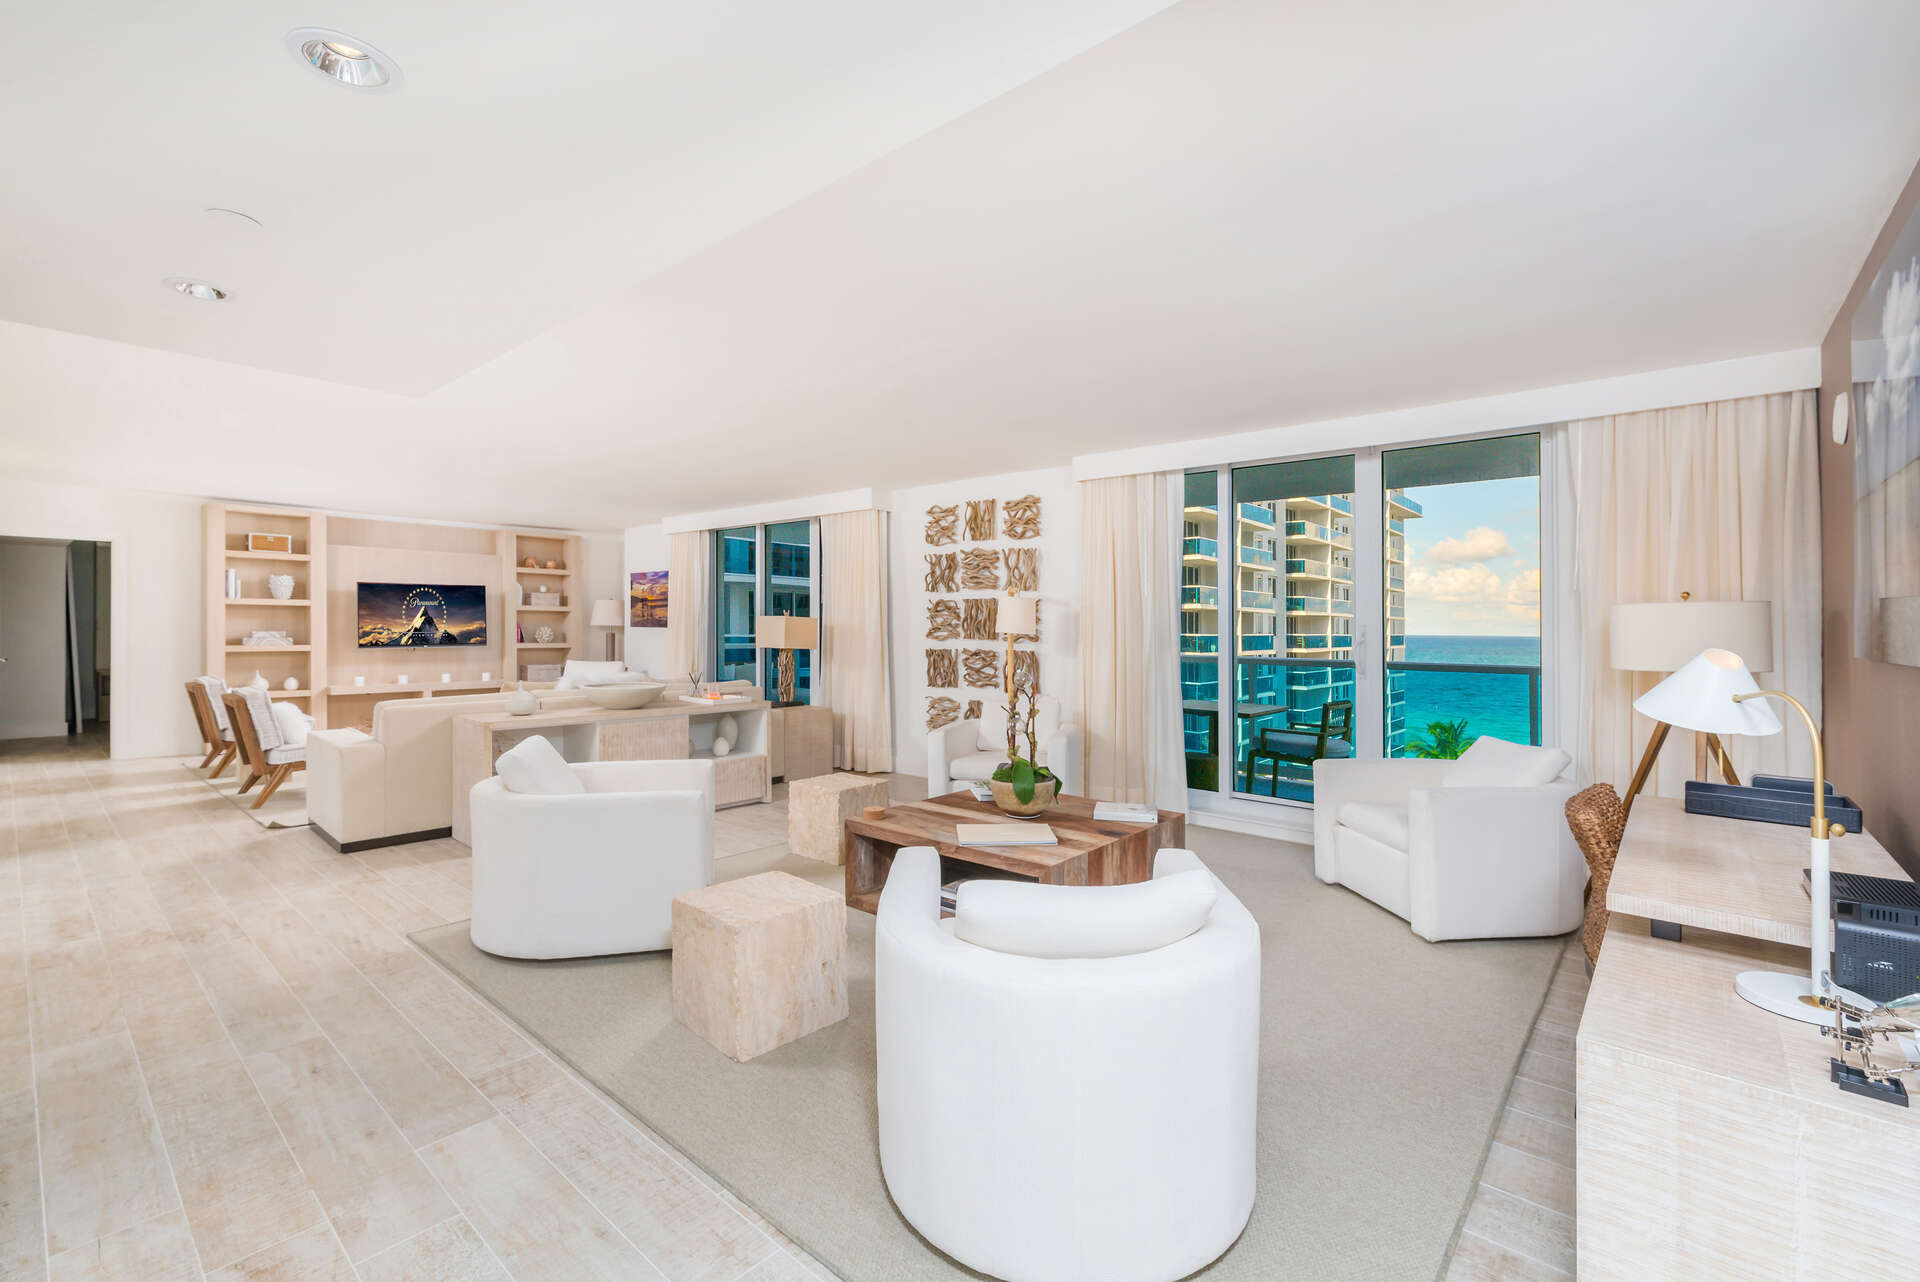 Luxury vacation rentals usa - Florida - Miami beach - Eco hotel southbeach - #1040 | 3 BDM Oceanfront - Image 1/30